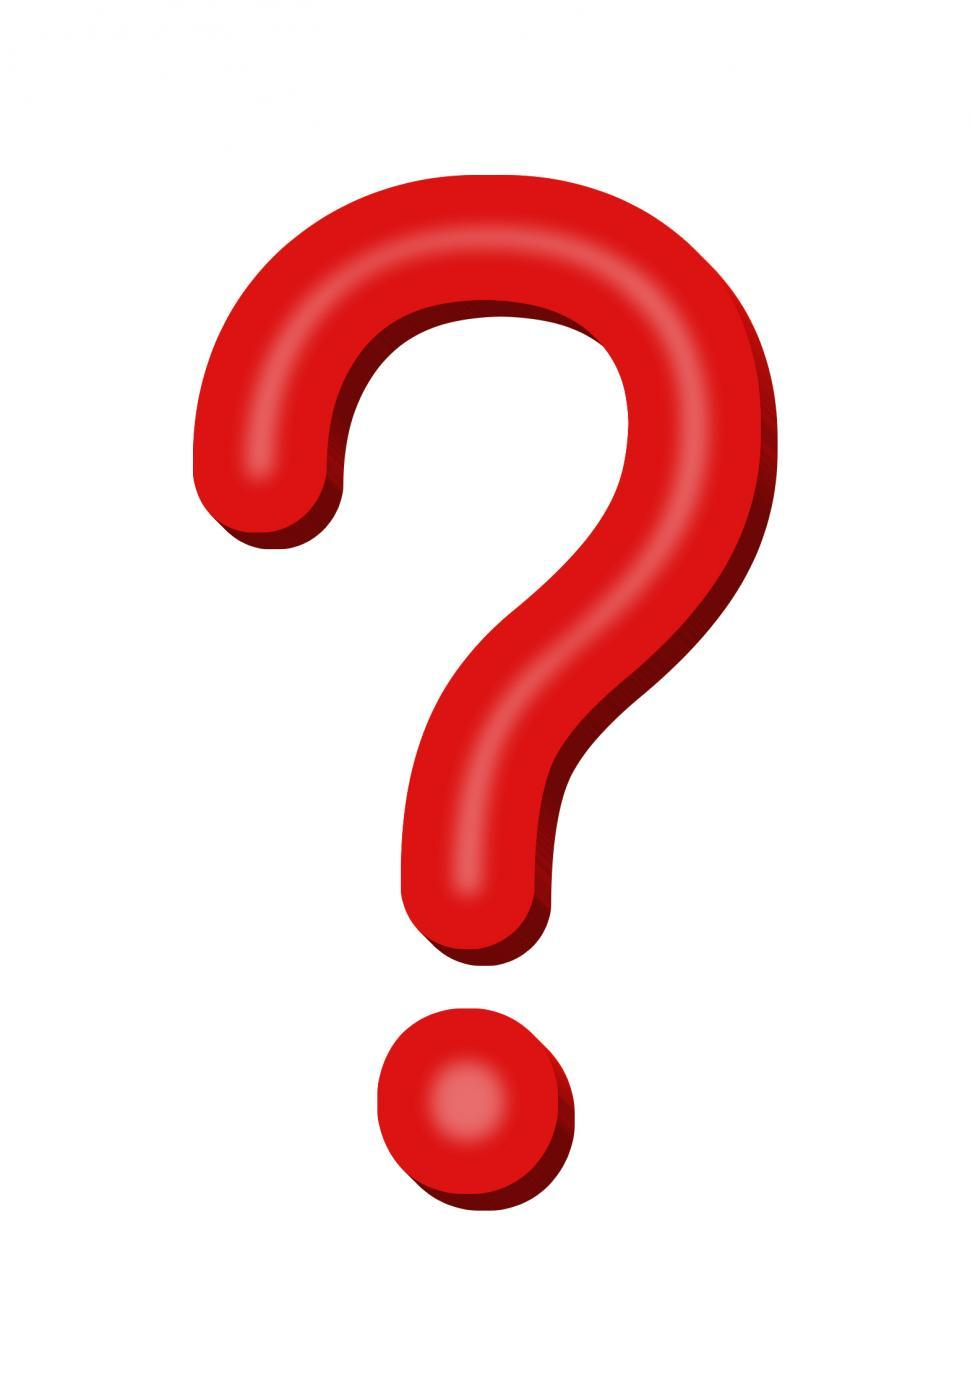 Download Free Stock Photo of Red Question Mark